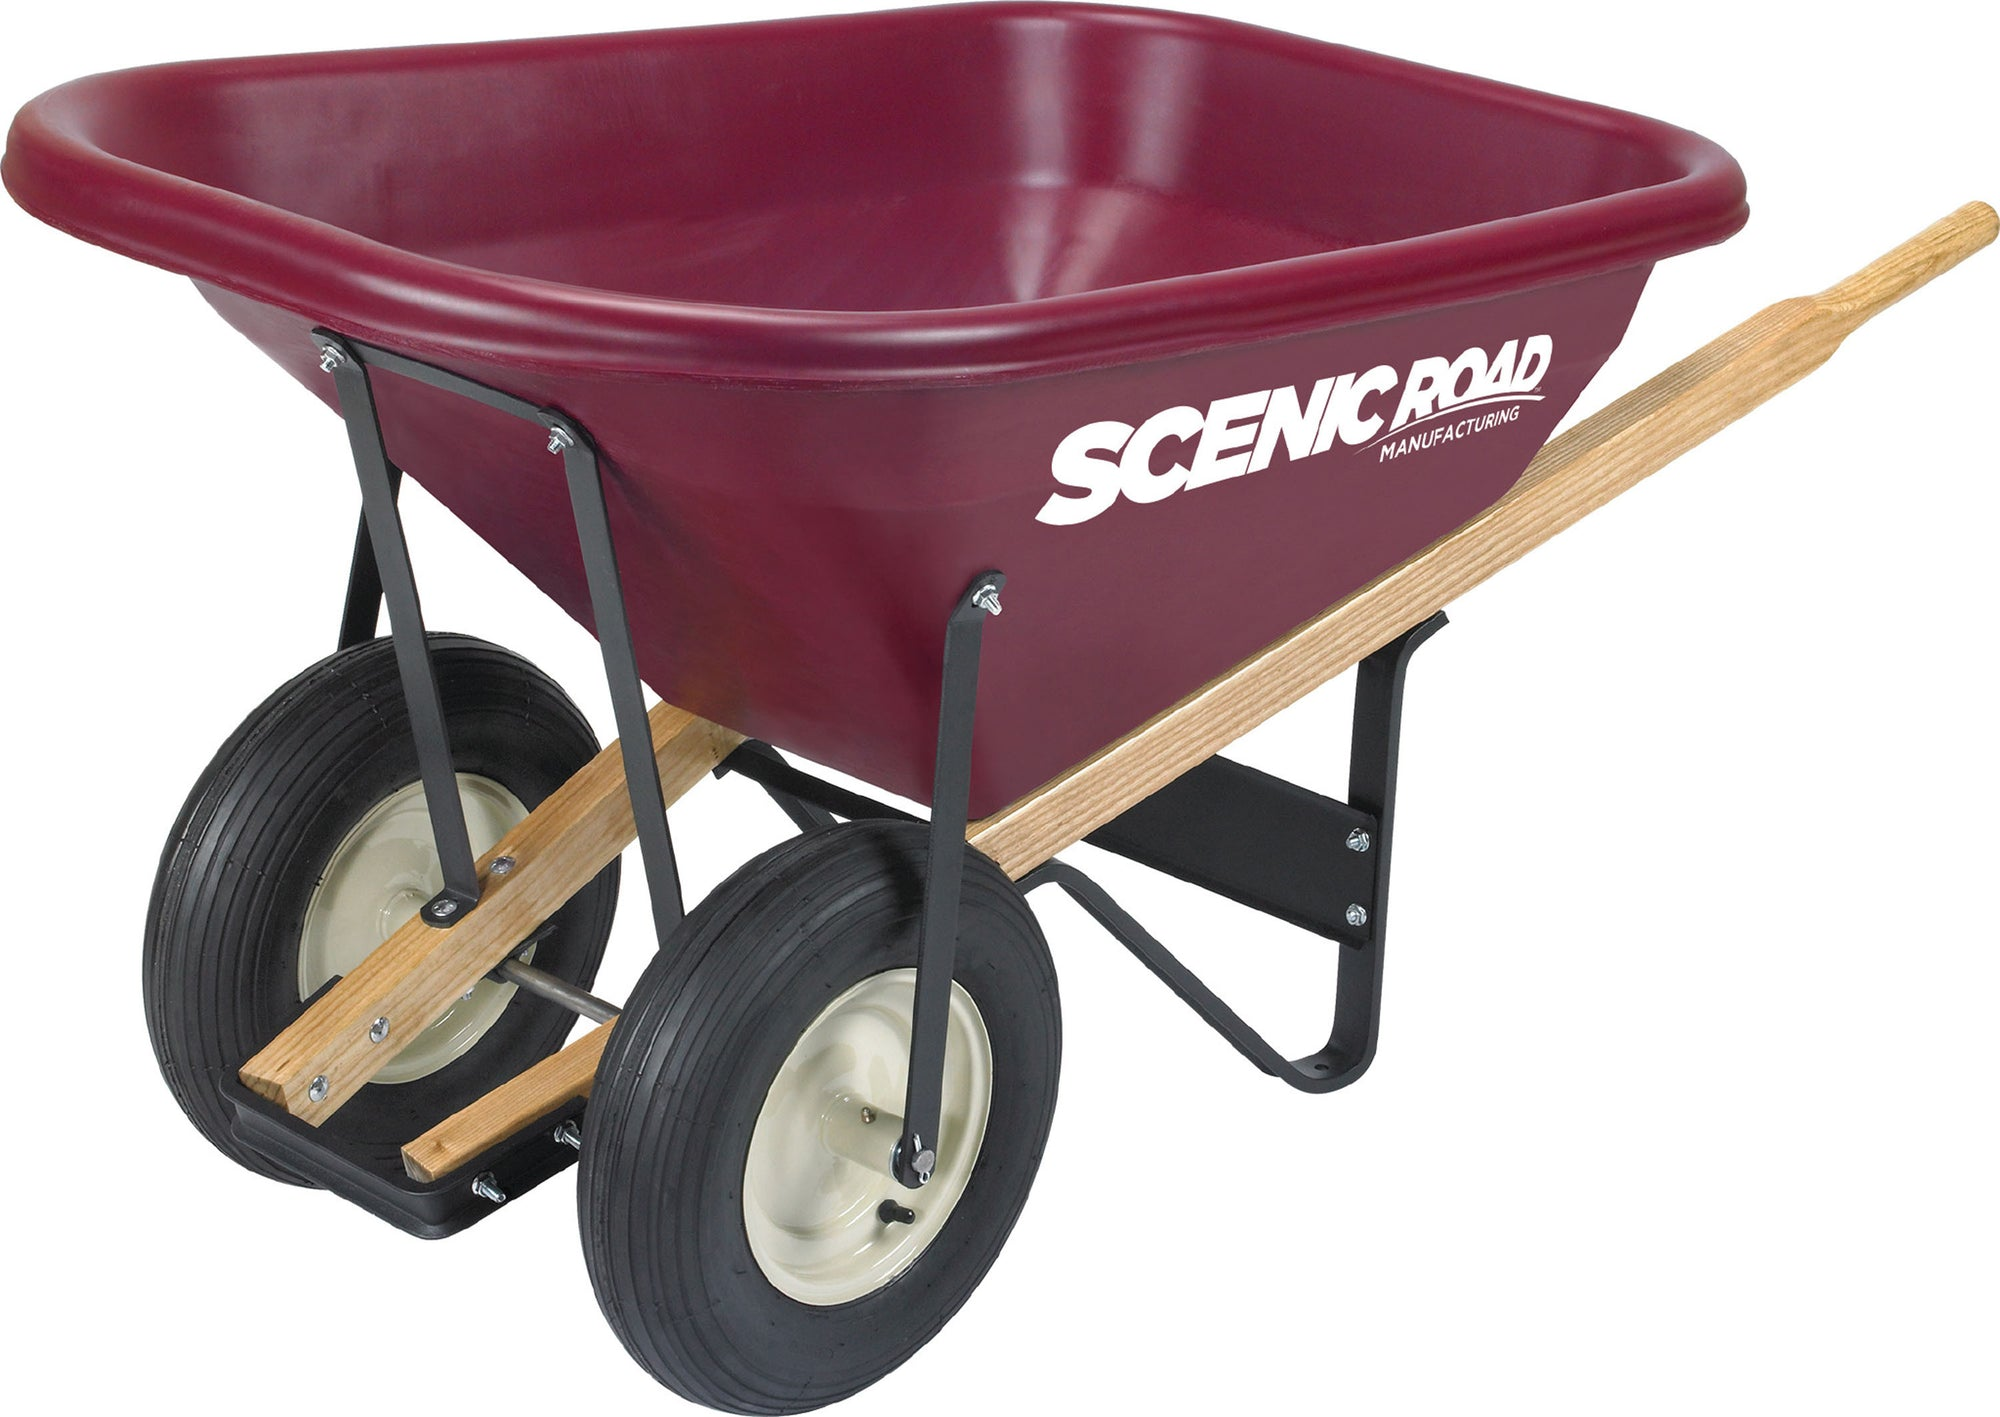 Scenic Road 8 Cubic Foot Dual Wheel Wheelbarrow W/Ribbed Tire